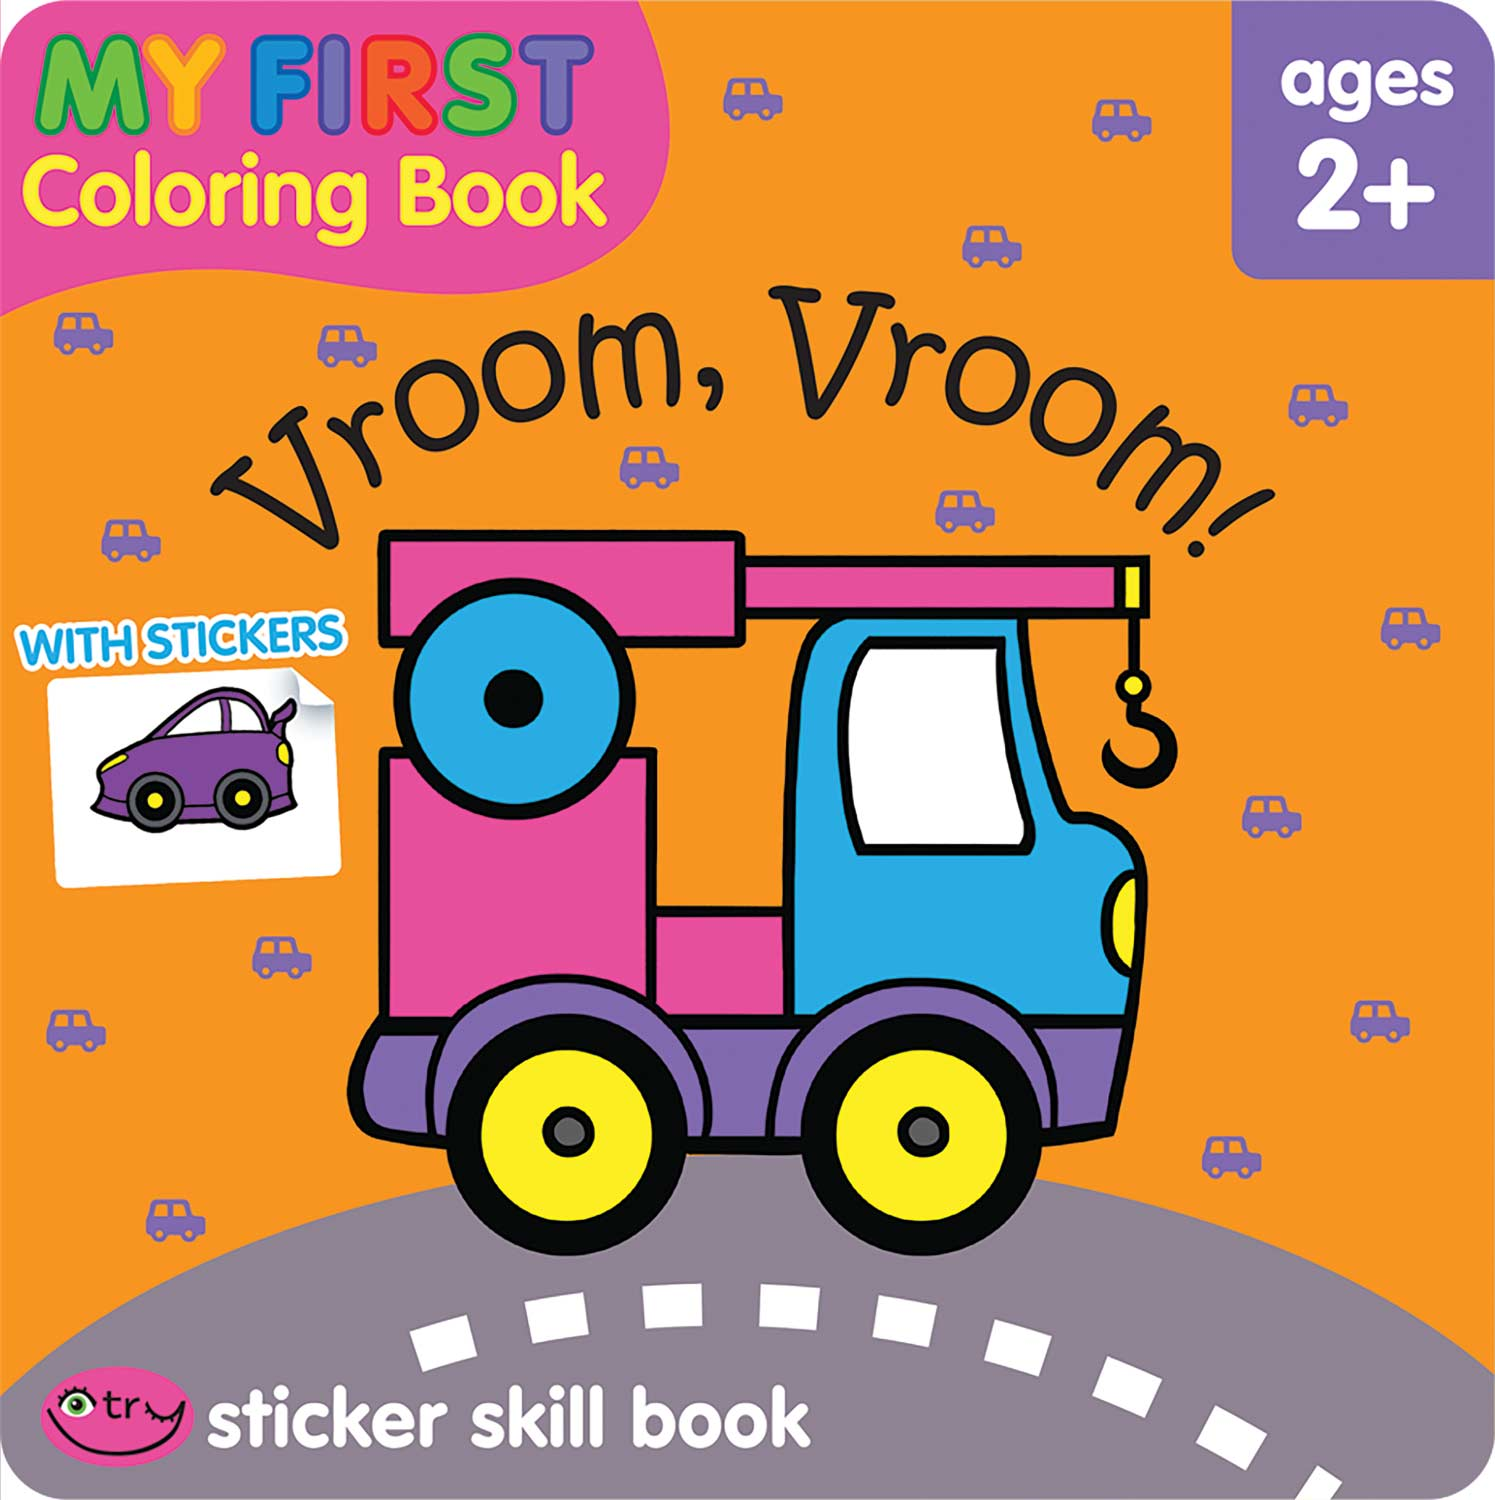 My First Coloring Book Sticker Skill Book - Vroom, Vroom! - Kool & Child